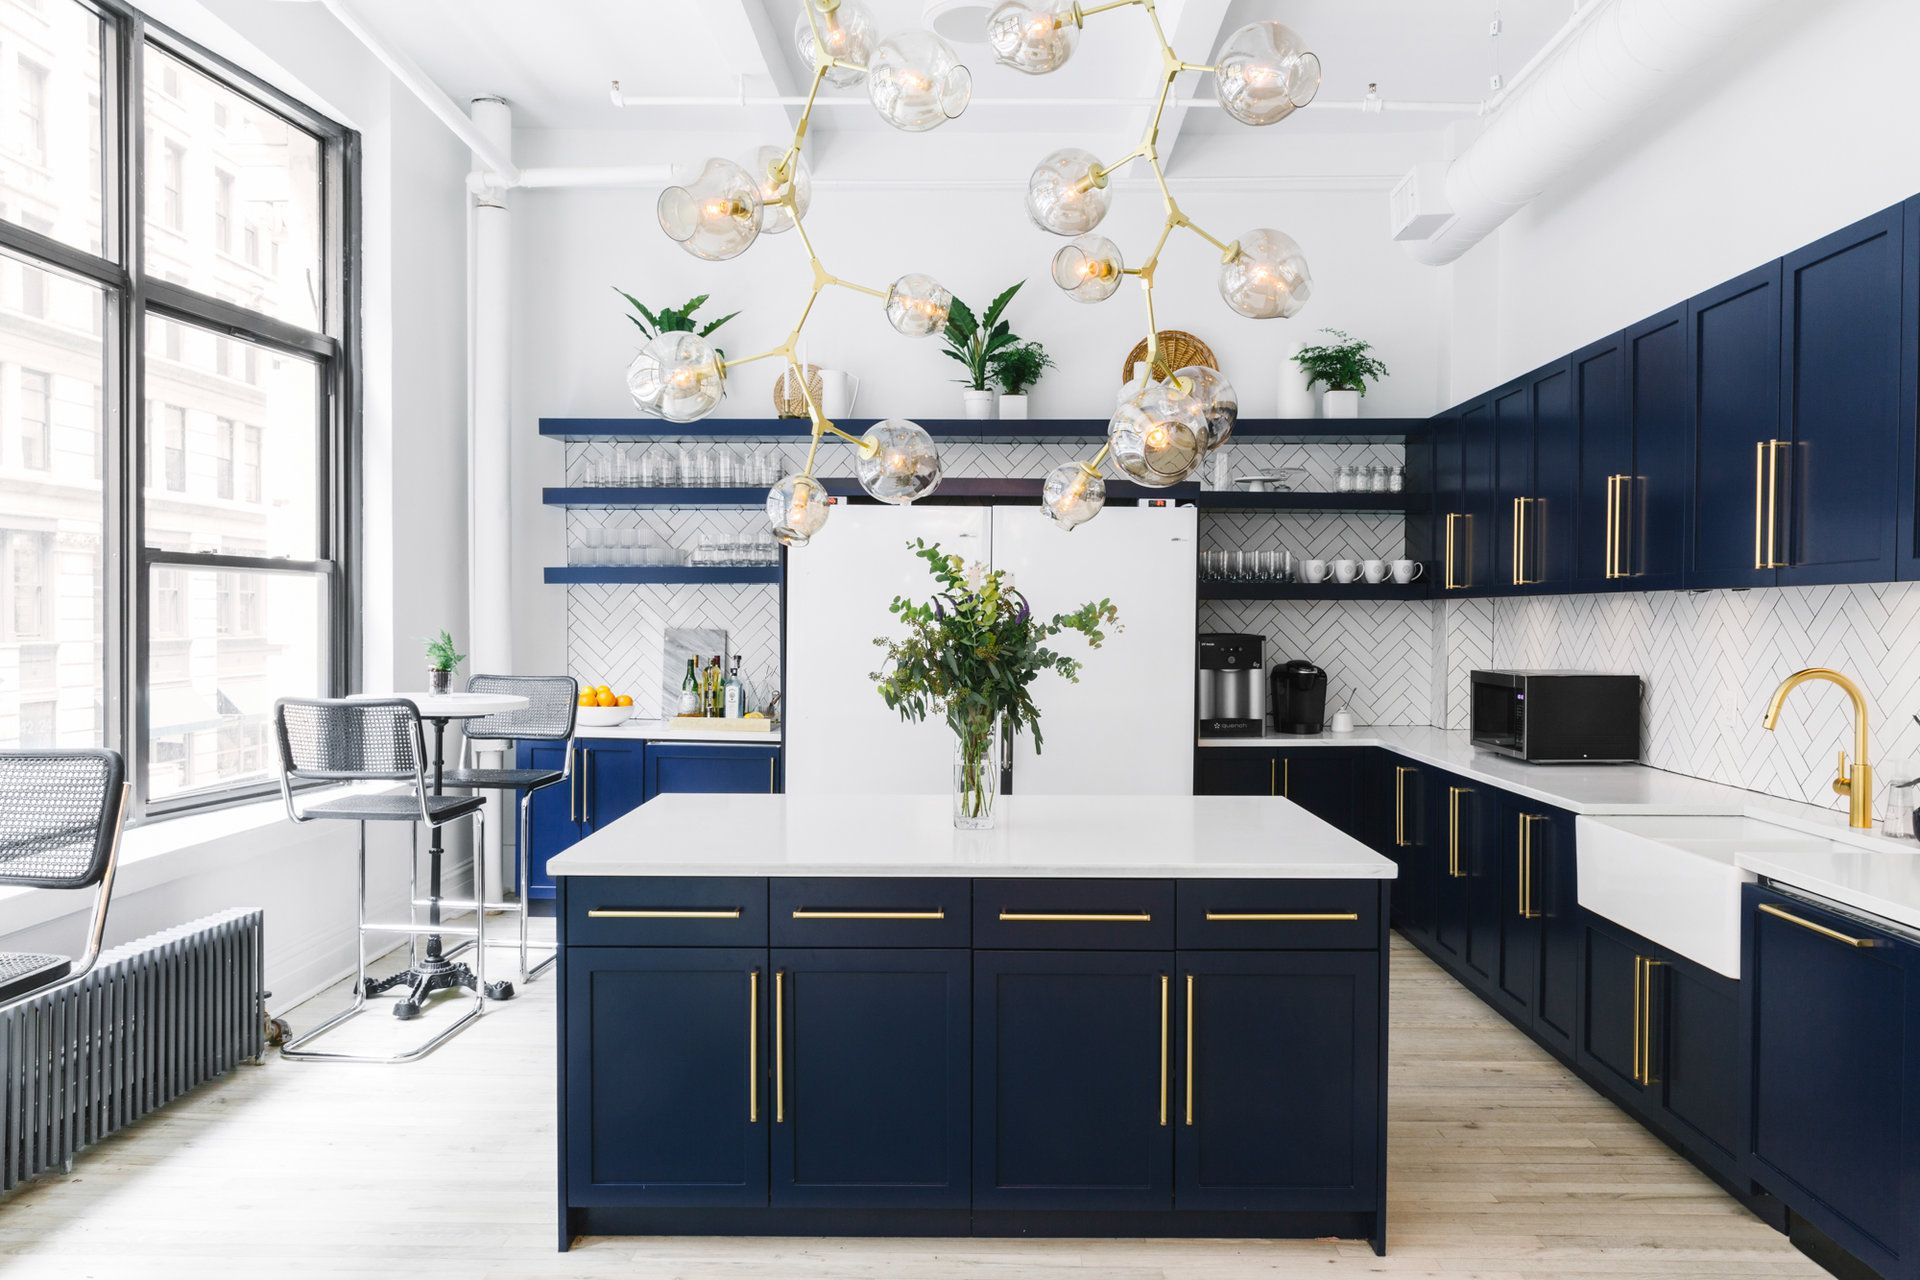 Inside The Stunning New Headquarters Of A New York Design Startup That Creates Awesome Spaces For Tech Companies And Their Execs Communal Kitchen Modern Kitchen Cabinets Interior Design Kitchen